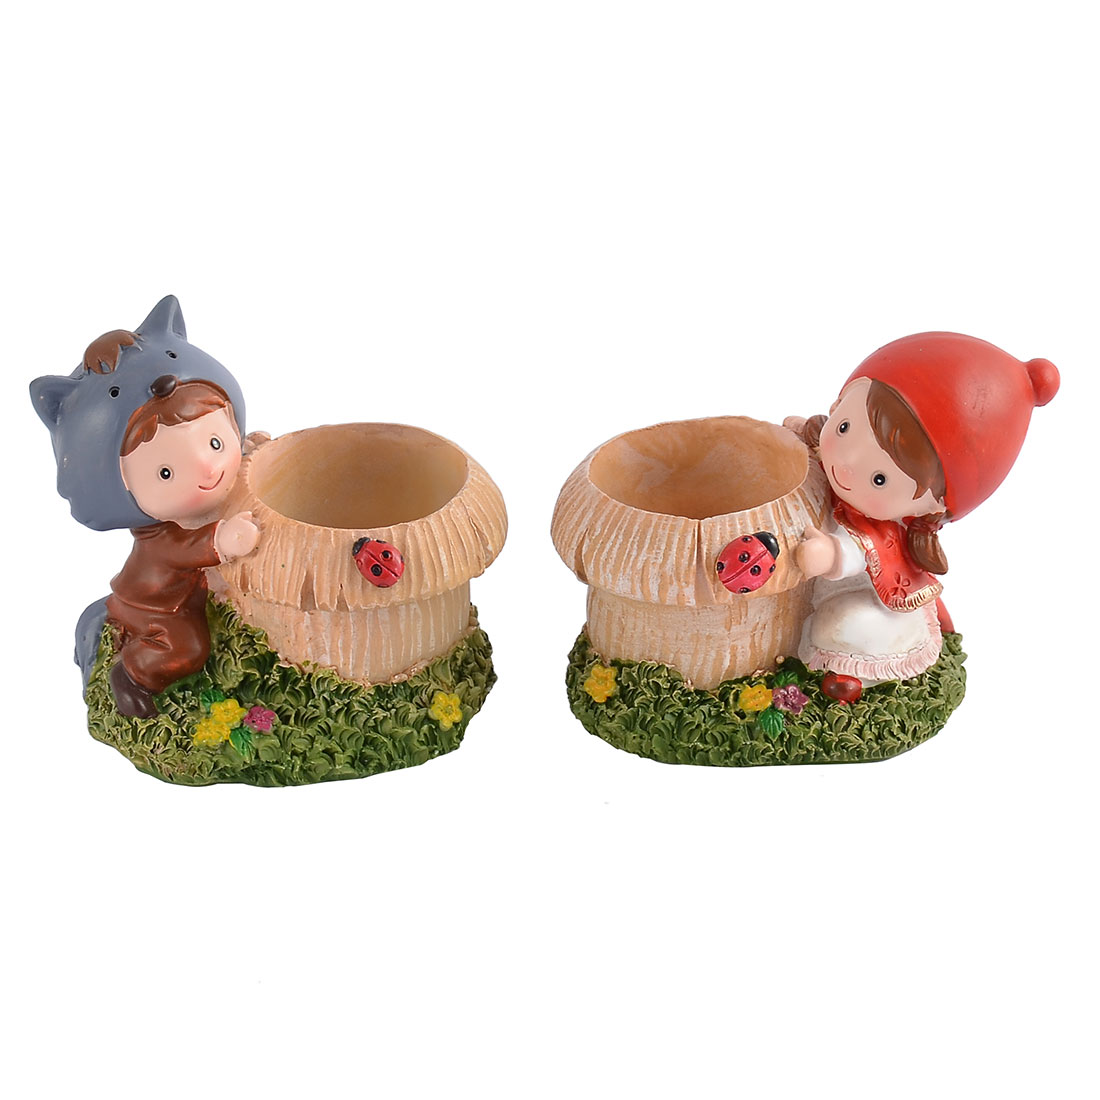 Office Desk Home Bedroom Mini Resin Cartoon Plant Flower Pot Decoration 2 in 1